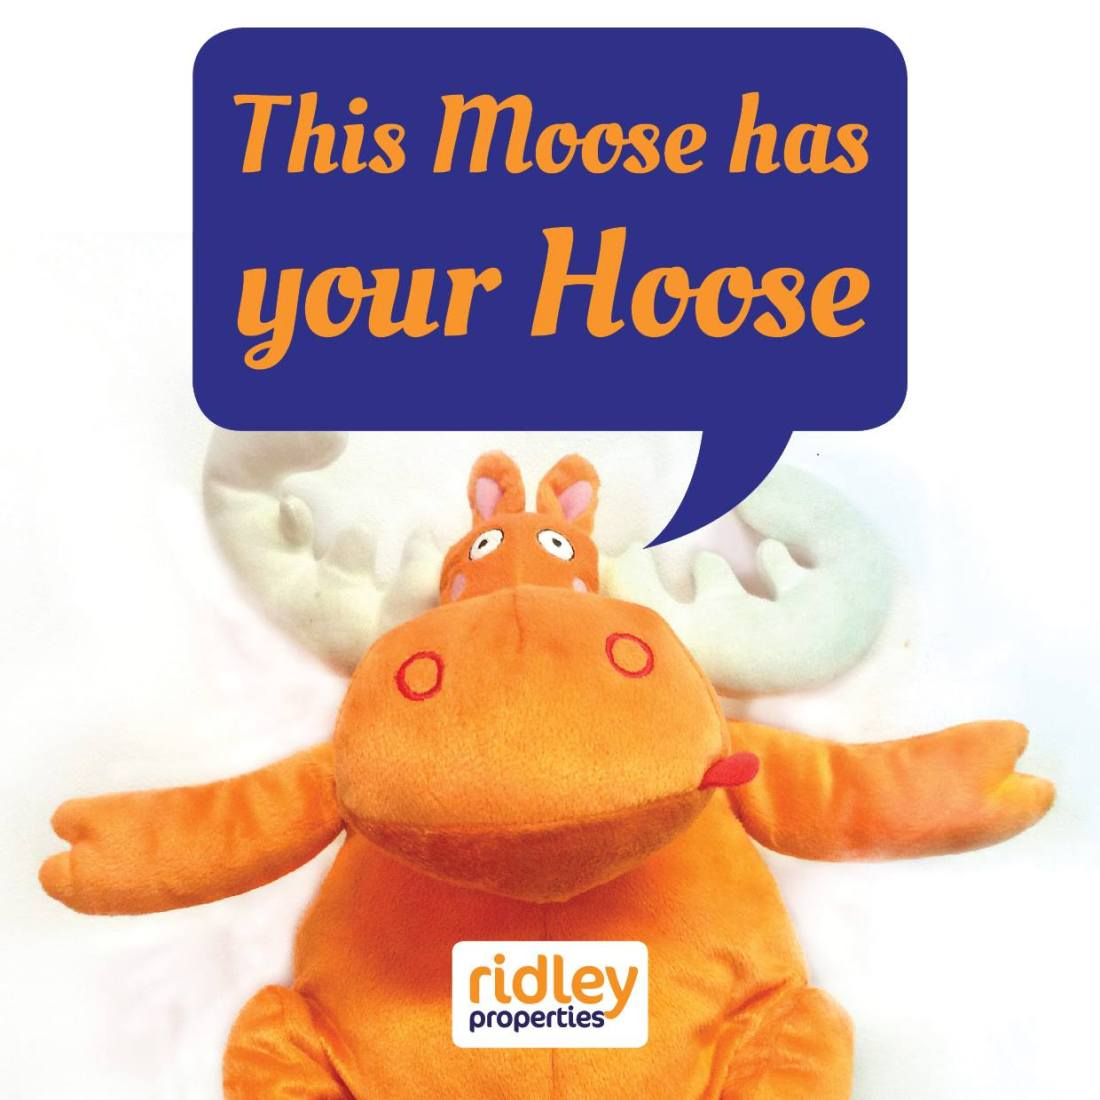 This Moose has Your Hoose  Marketing Campaign - Facebook/Twitter Profile Image